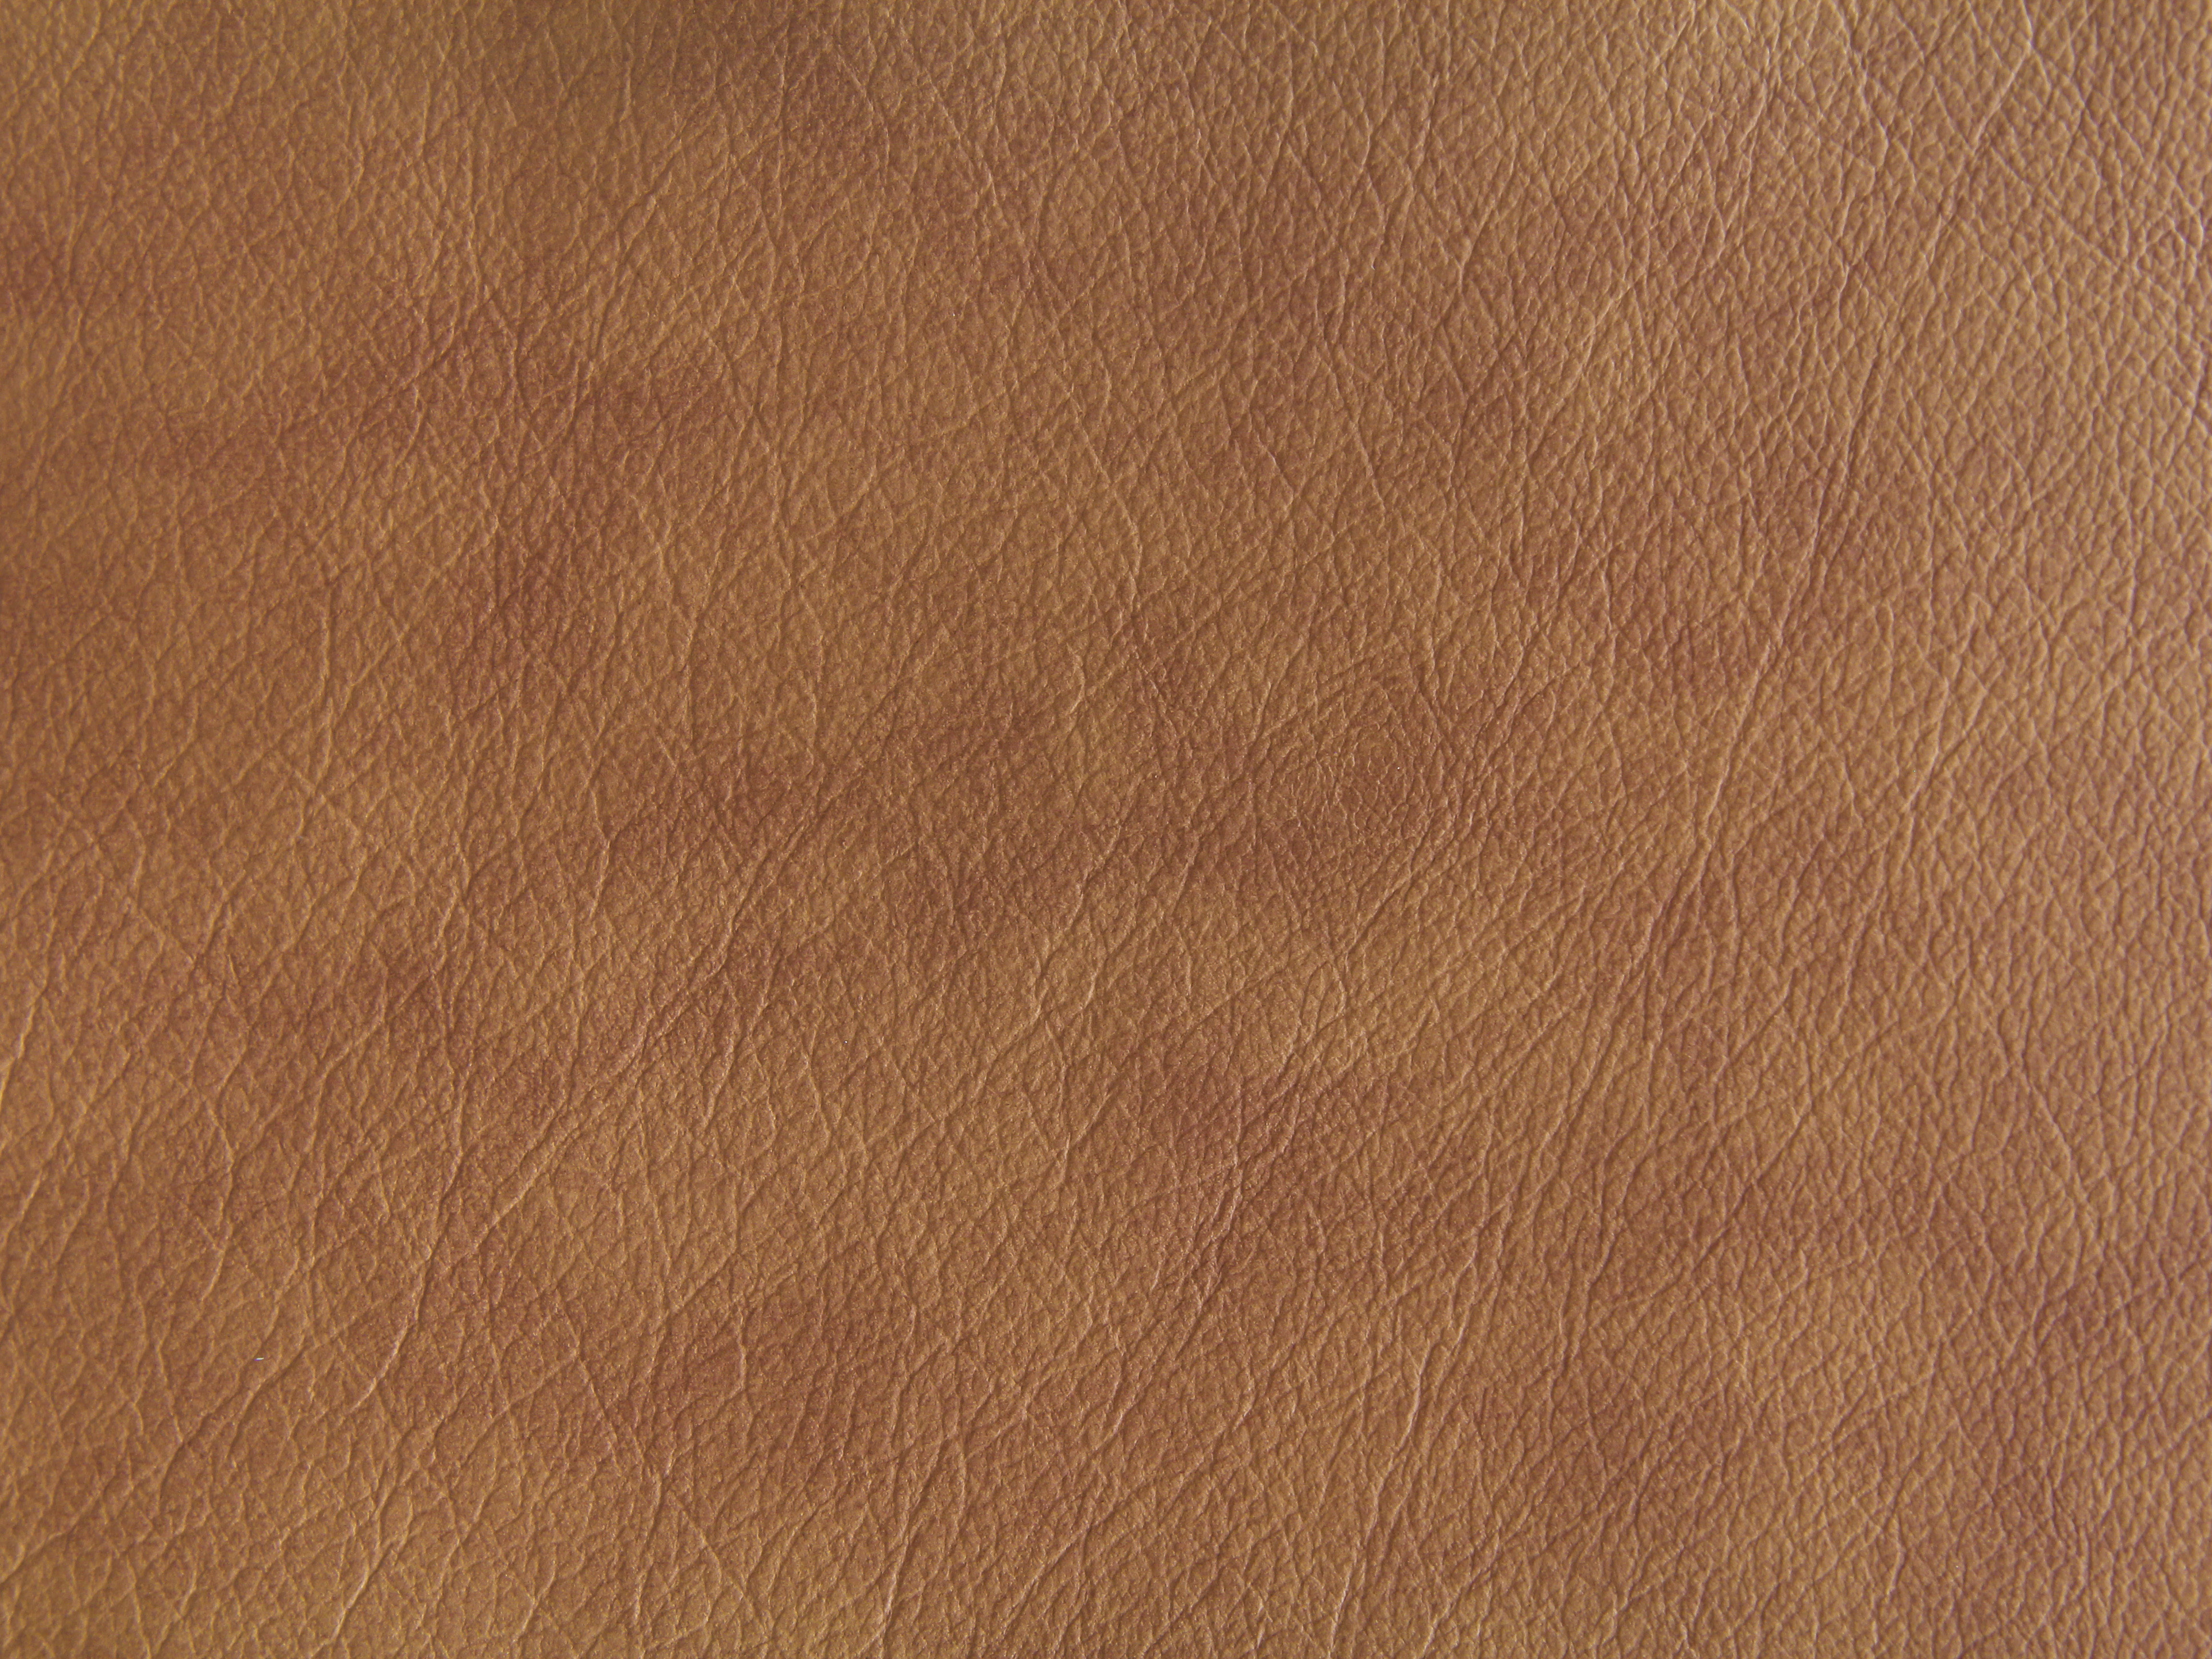 coudy-brown-leather-texture-wallpaper-fabric-stock-image-design ...